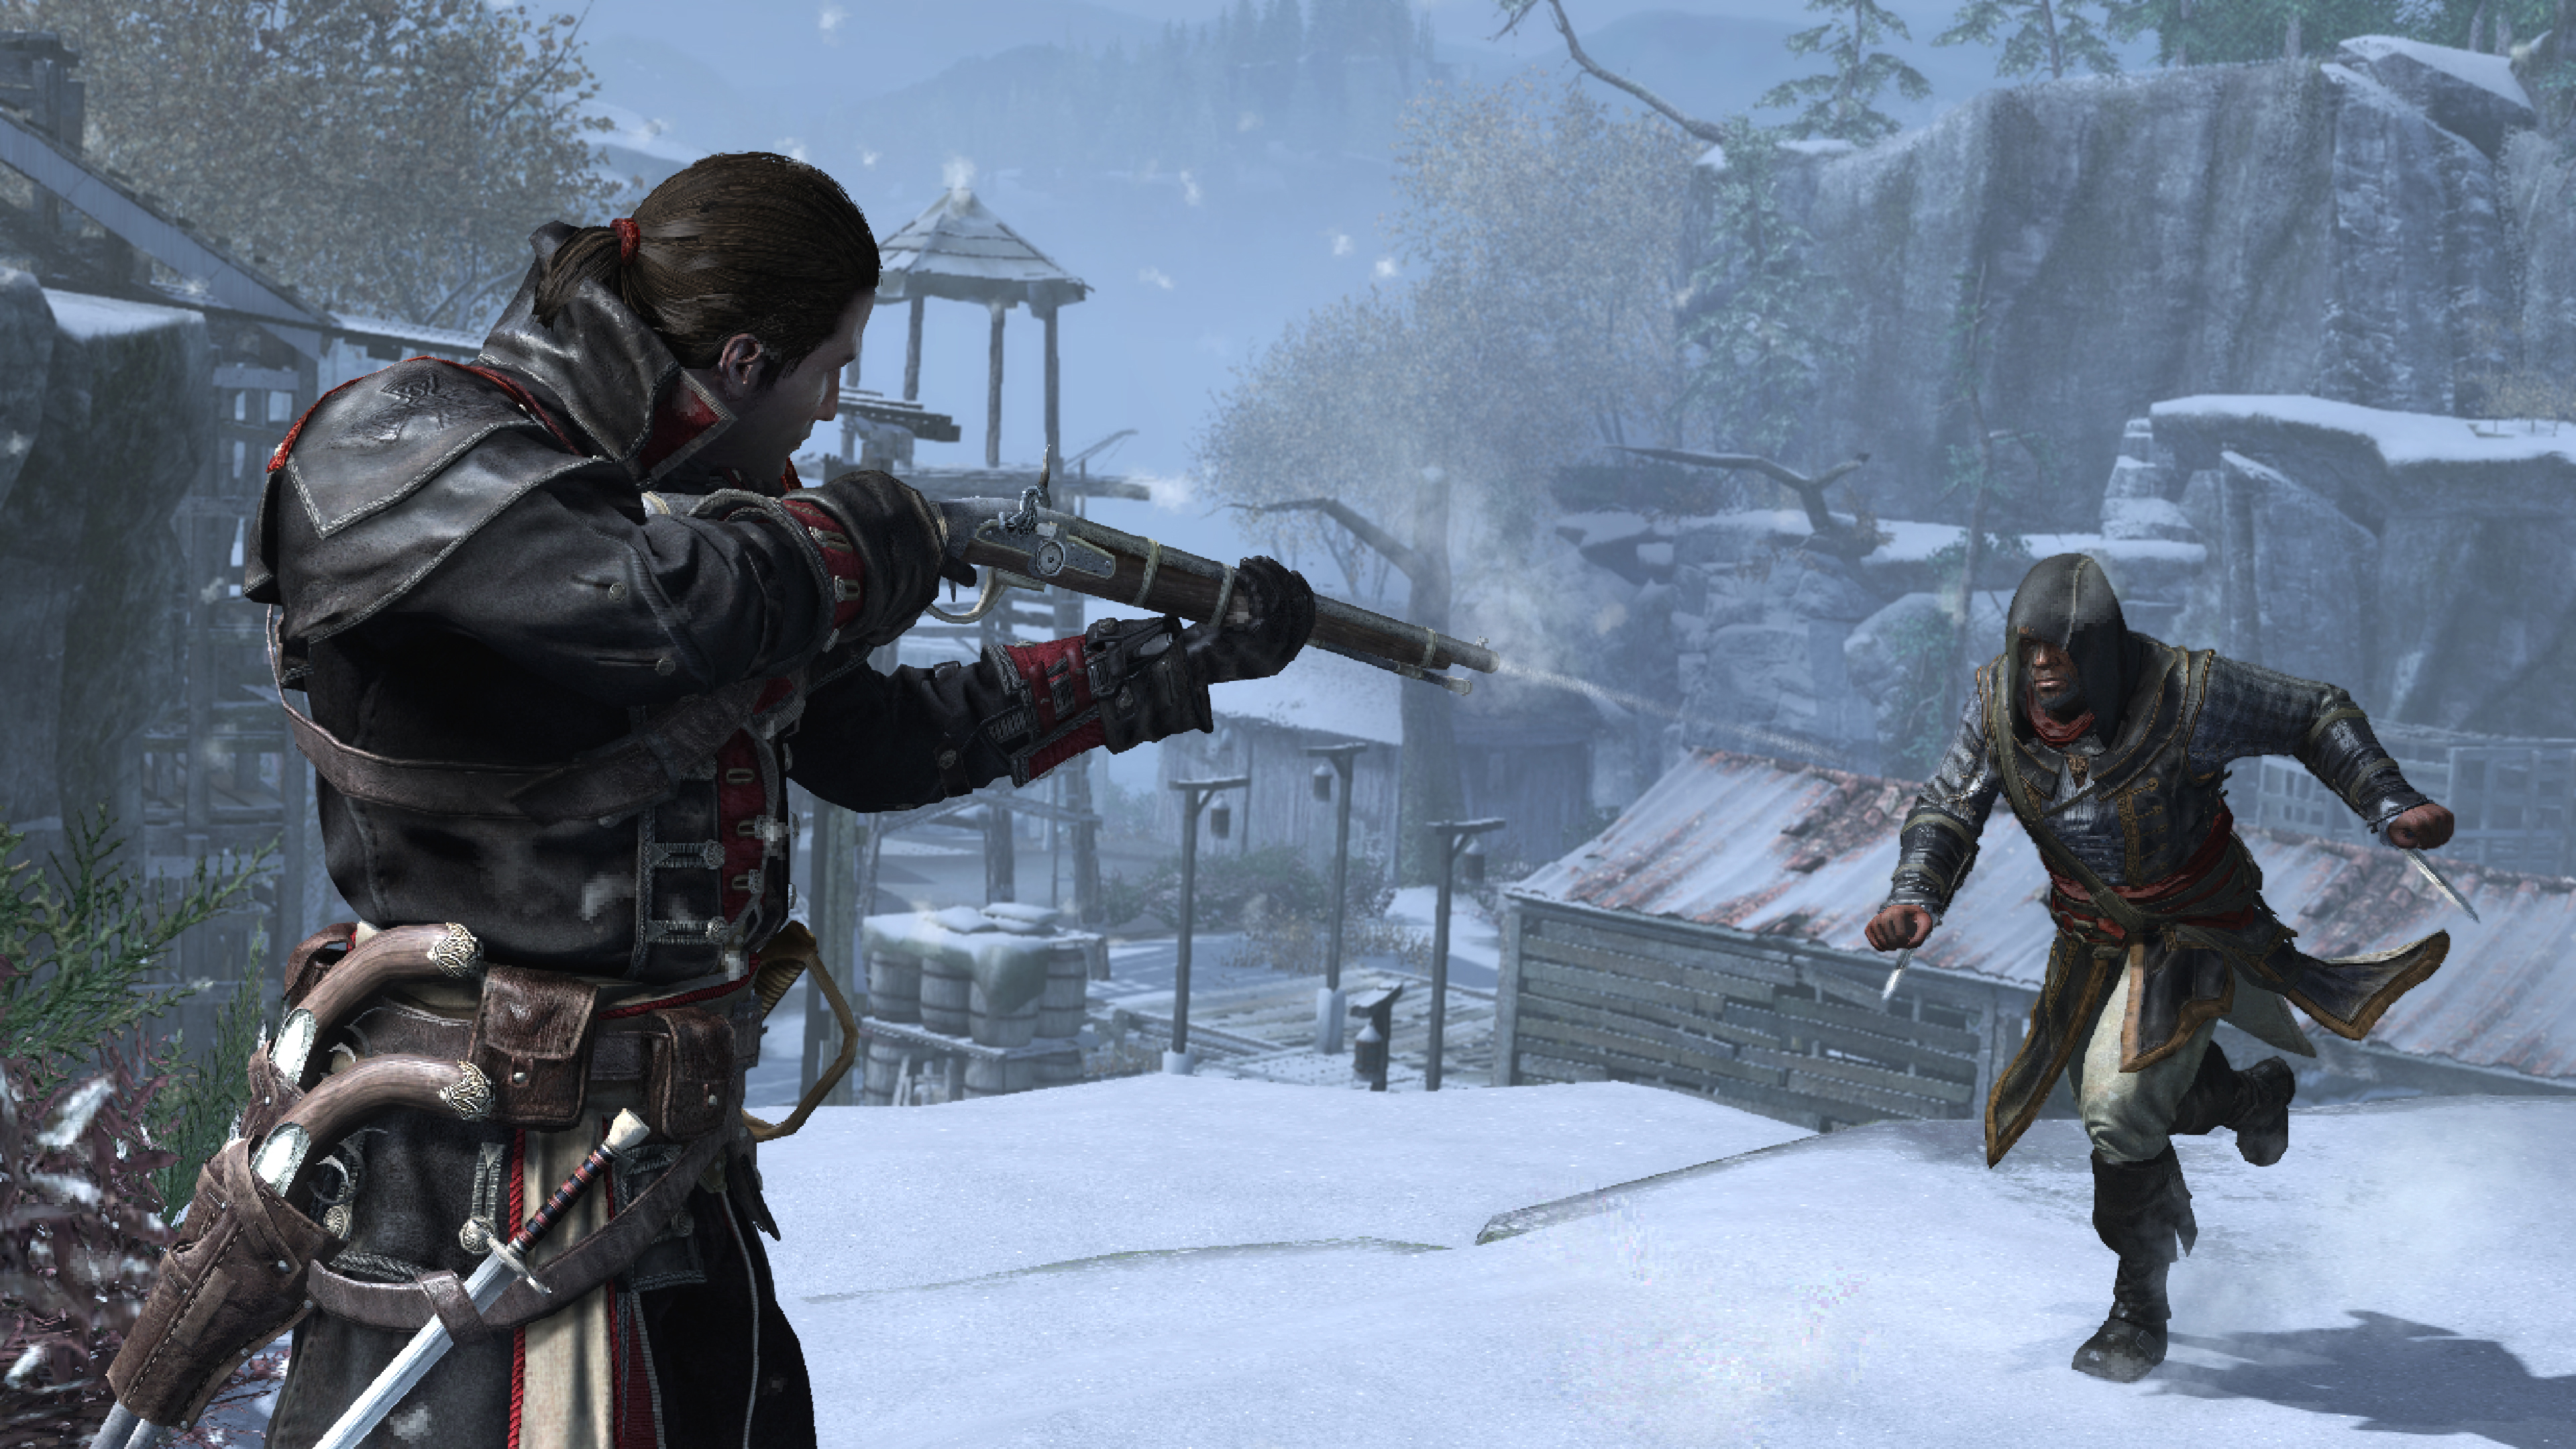 Assassin's Creed Rogue 4K remaster coming to PS4, Xbox One ...